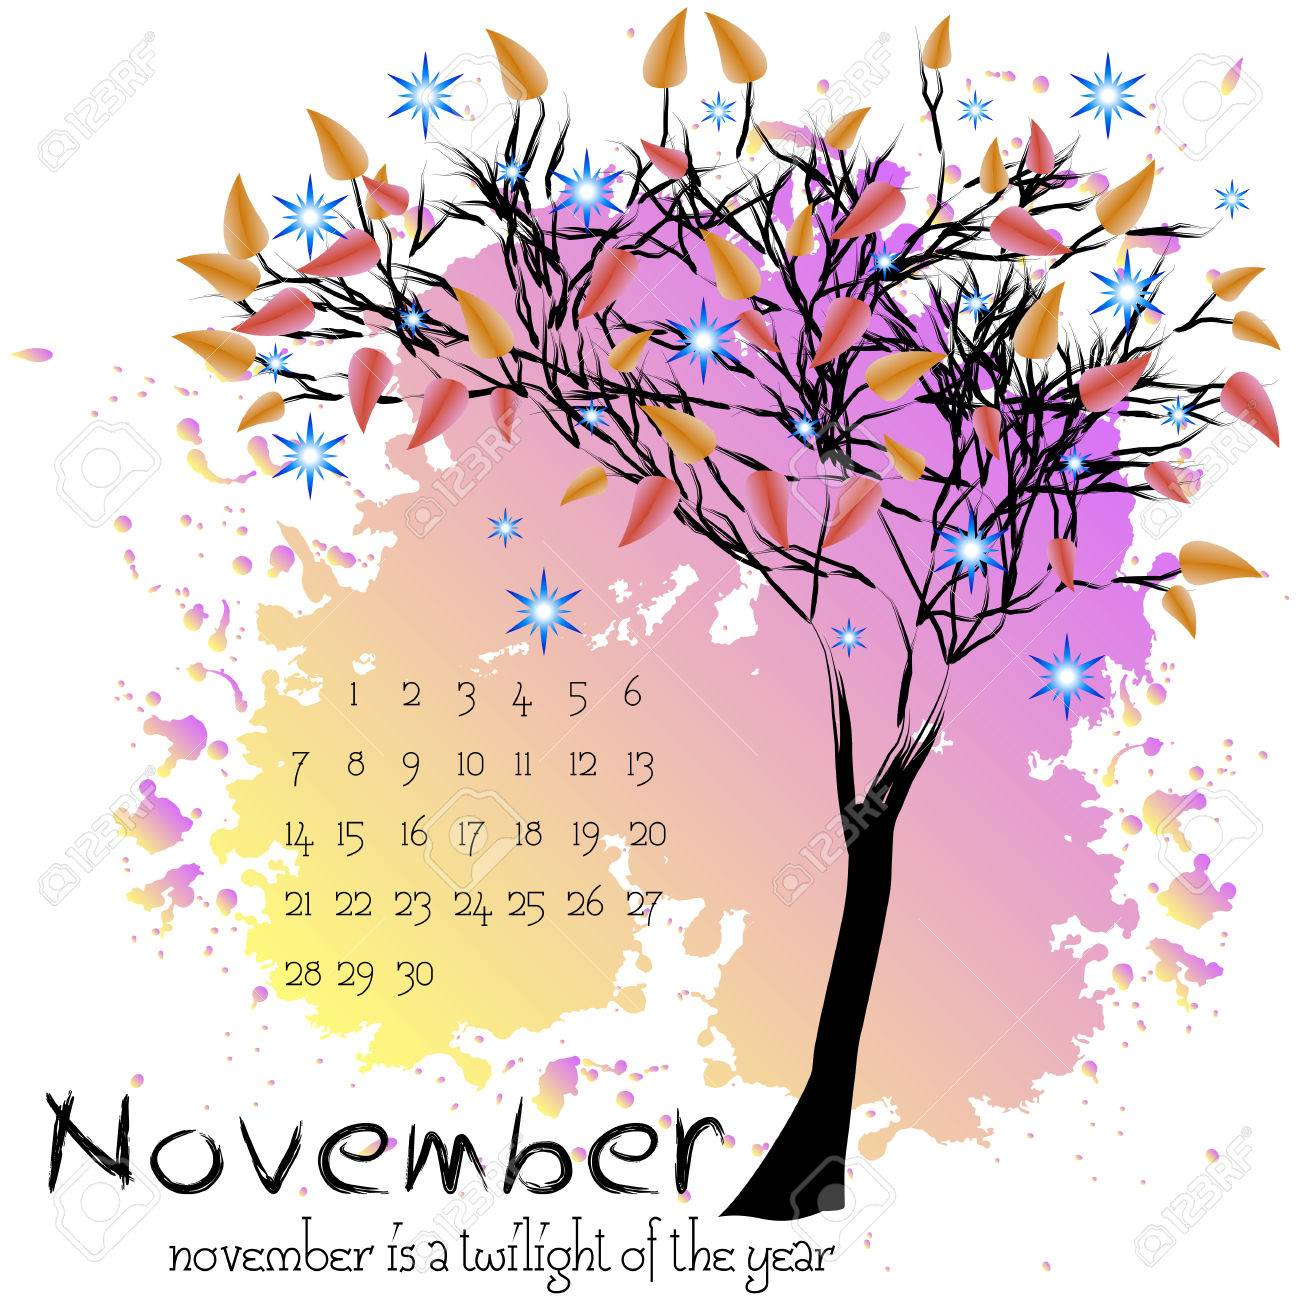 Abstract Nature Background With Autumn Tree With Scarlet Foliage And Sample  Of Dates For Calendar Month  Calendar Sample Design